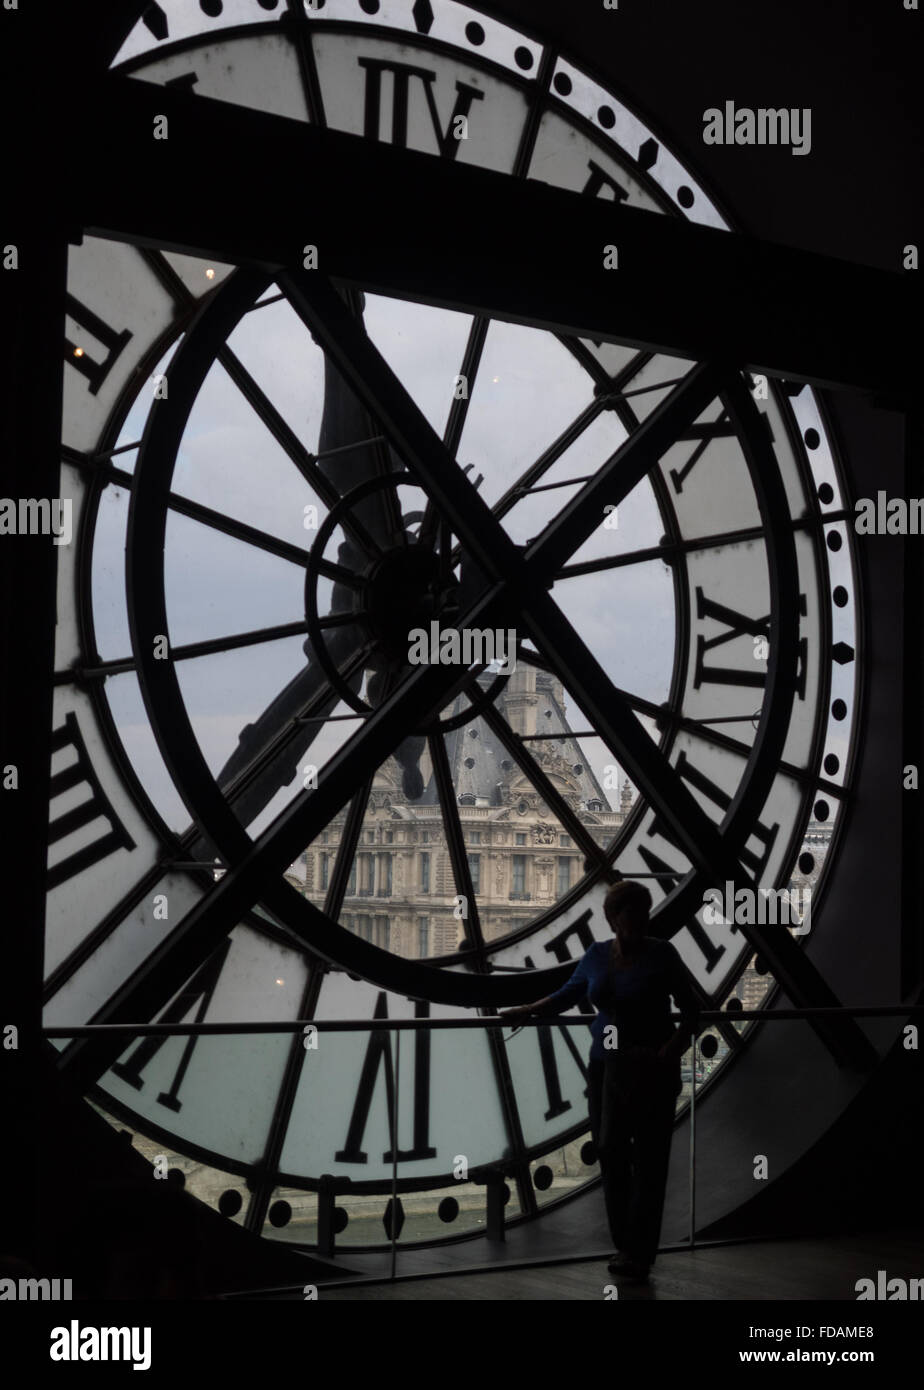 a silhouette figure standing looking through a huge clock face window onto the Paris scene outside, Musee D'Orsay - Stock Image